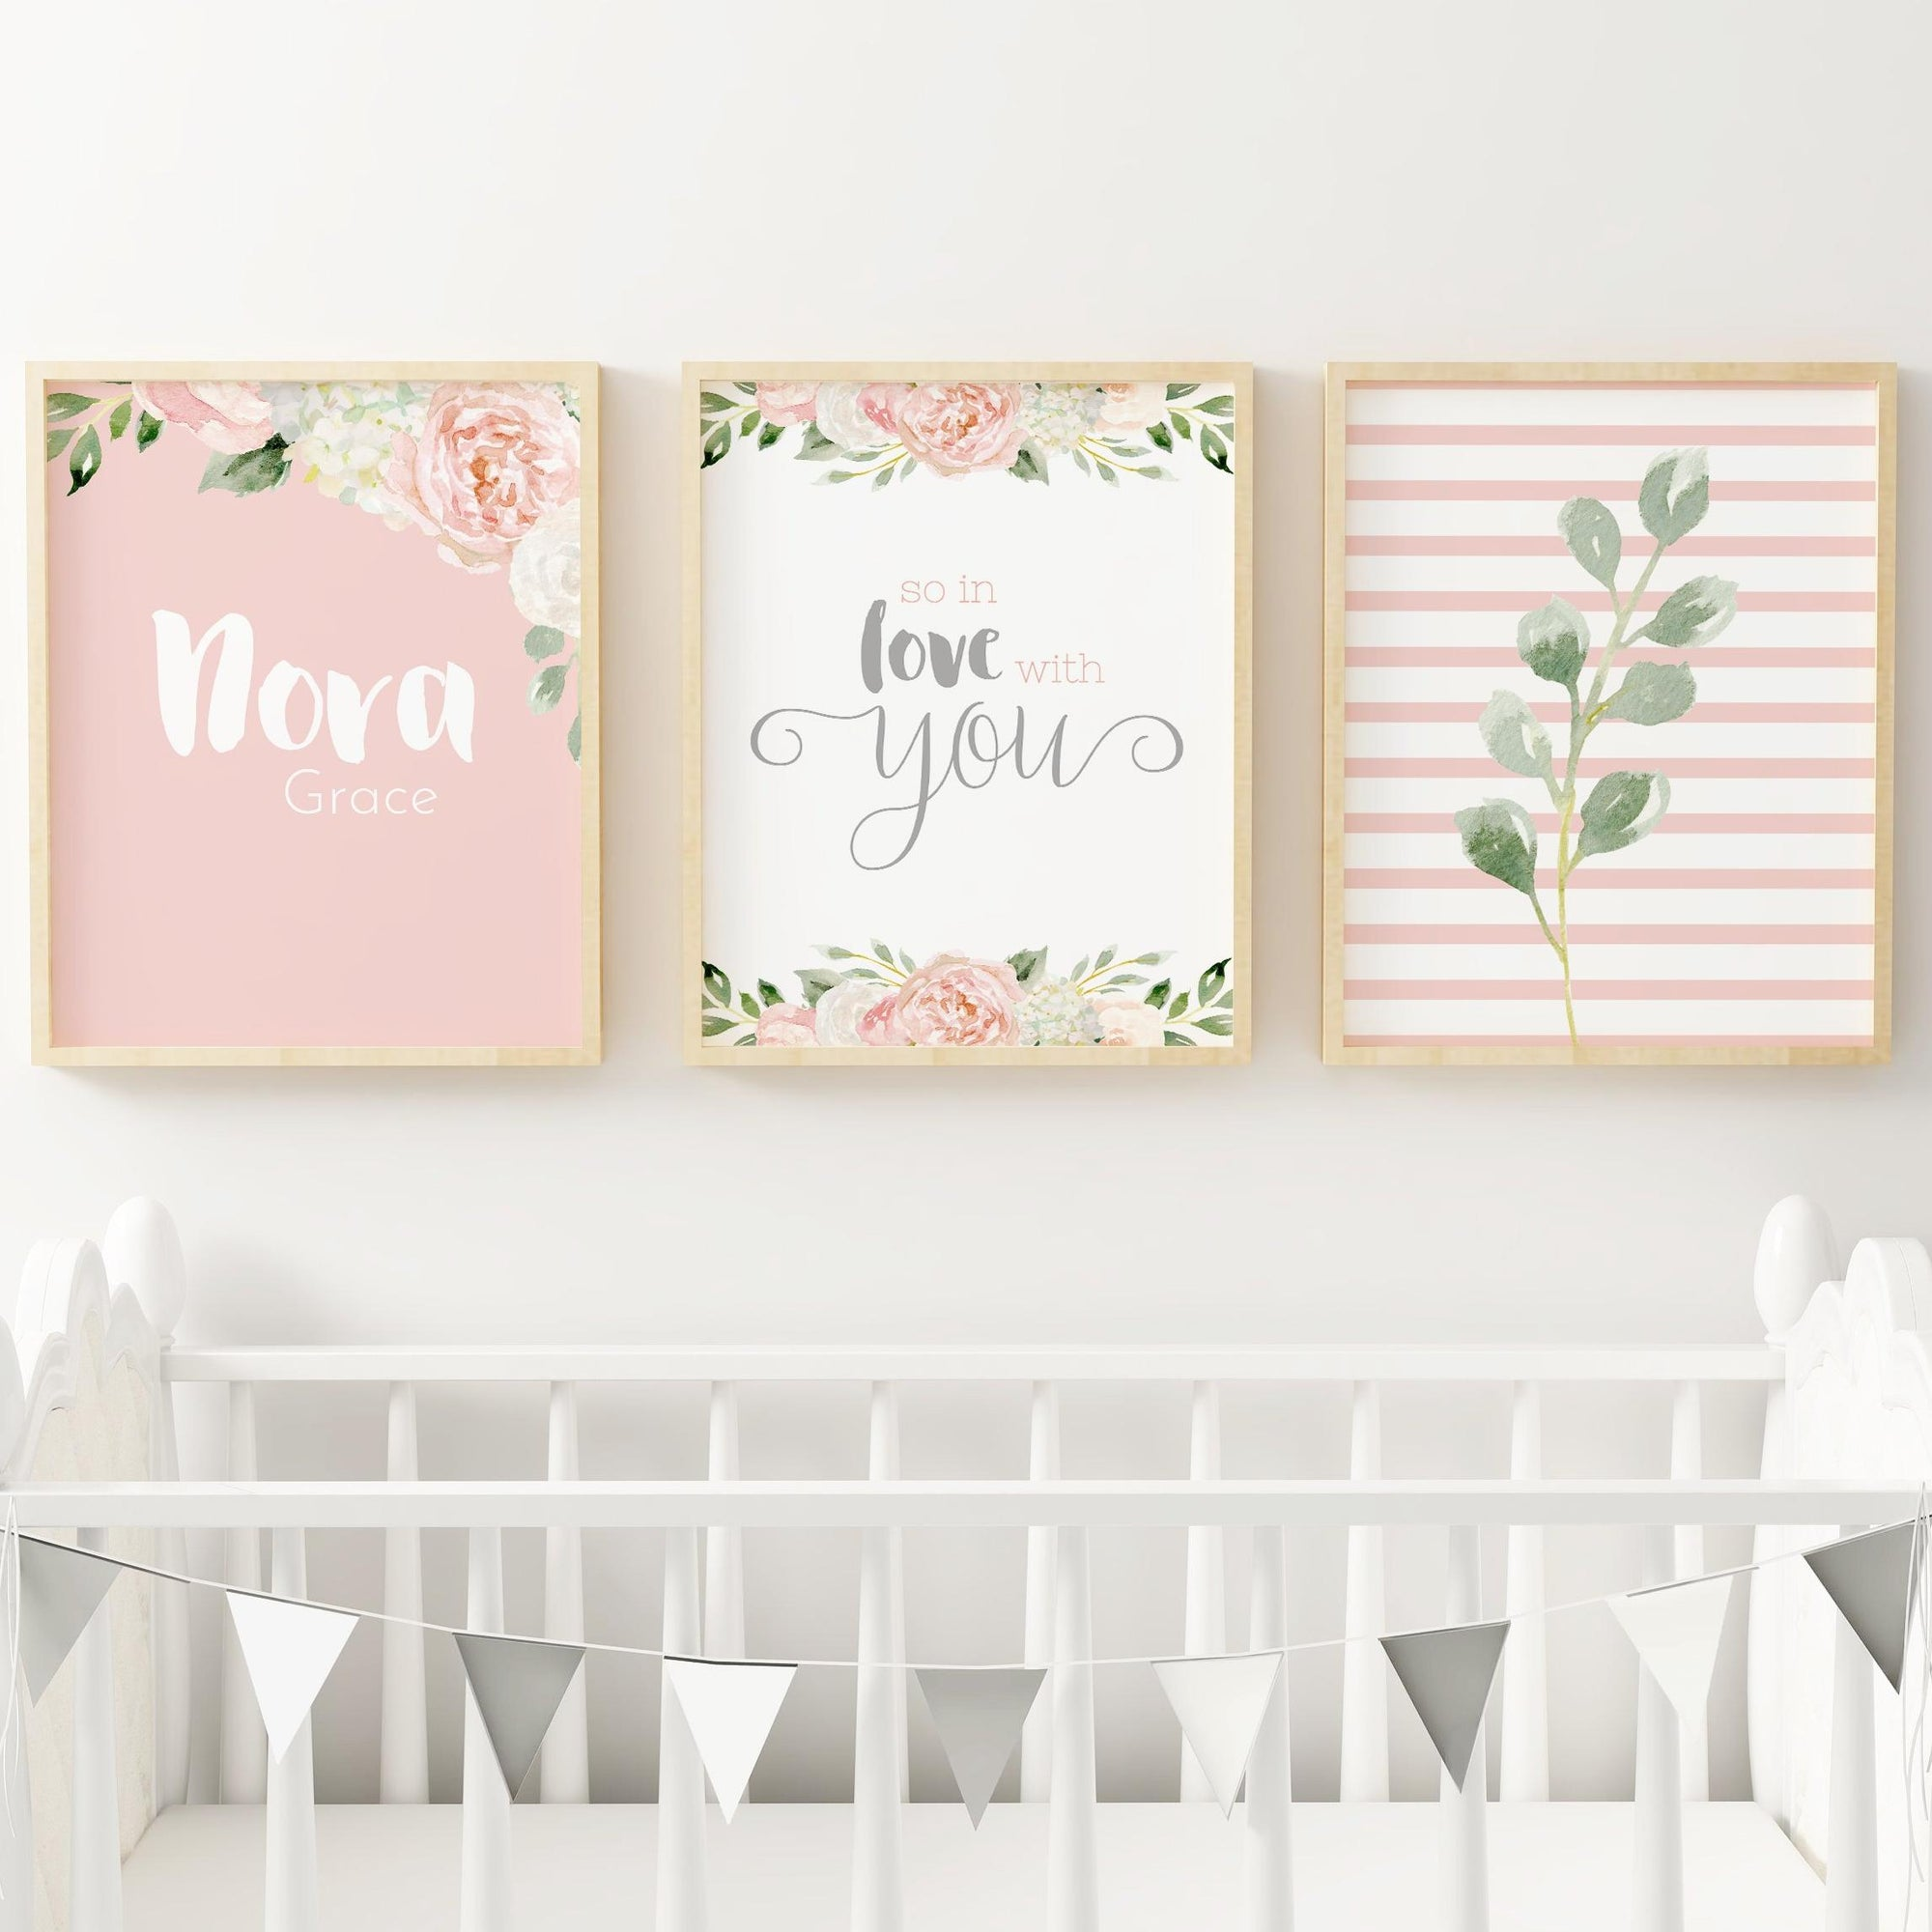 Dark Blush and Grey #3 // Set of 3 Prints Nursery Wall Decor for a Girl TheGracefulGoose